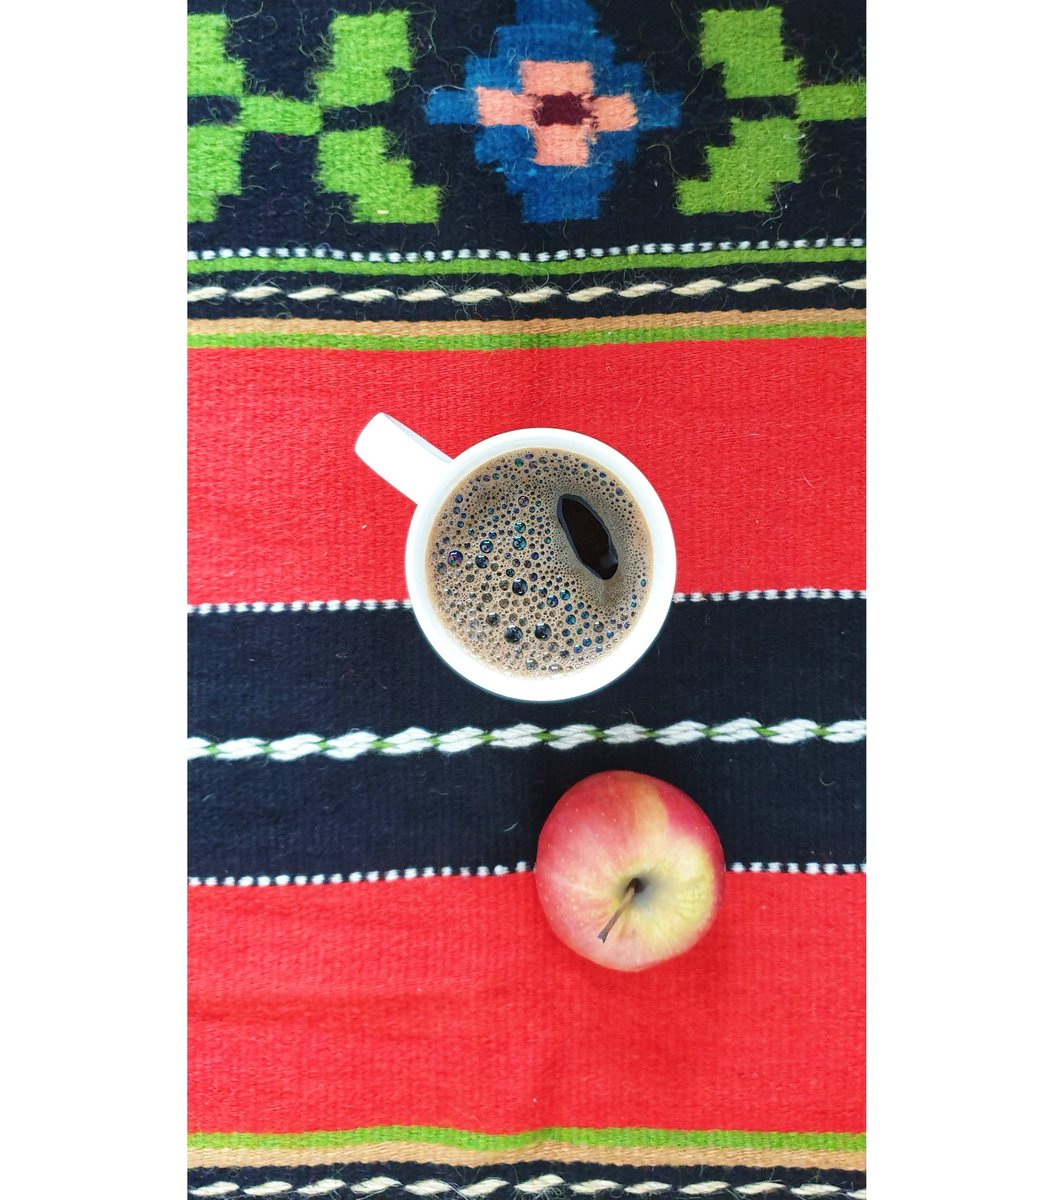 Simple things, happier life. #SustainableProducts #Sustainability #weekendvibes #coffee #CoffeeFriends #coffeelovers #romaniankilim #covoroltenesc #rug #handmade #simplelife #tapisroumain #tapis #tapusrouge #decomaison #homedecor #roman